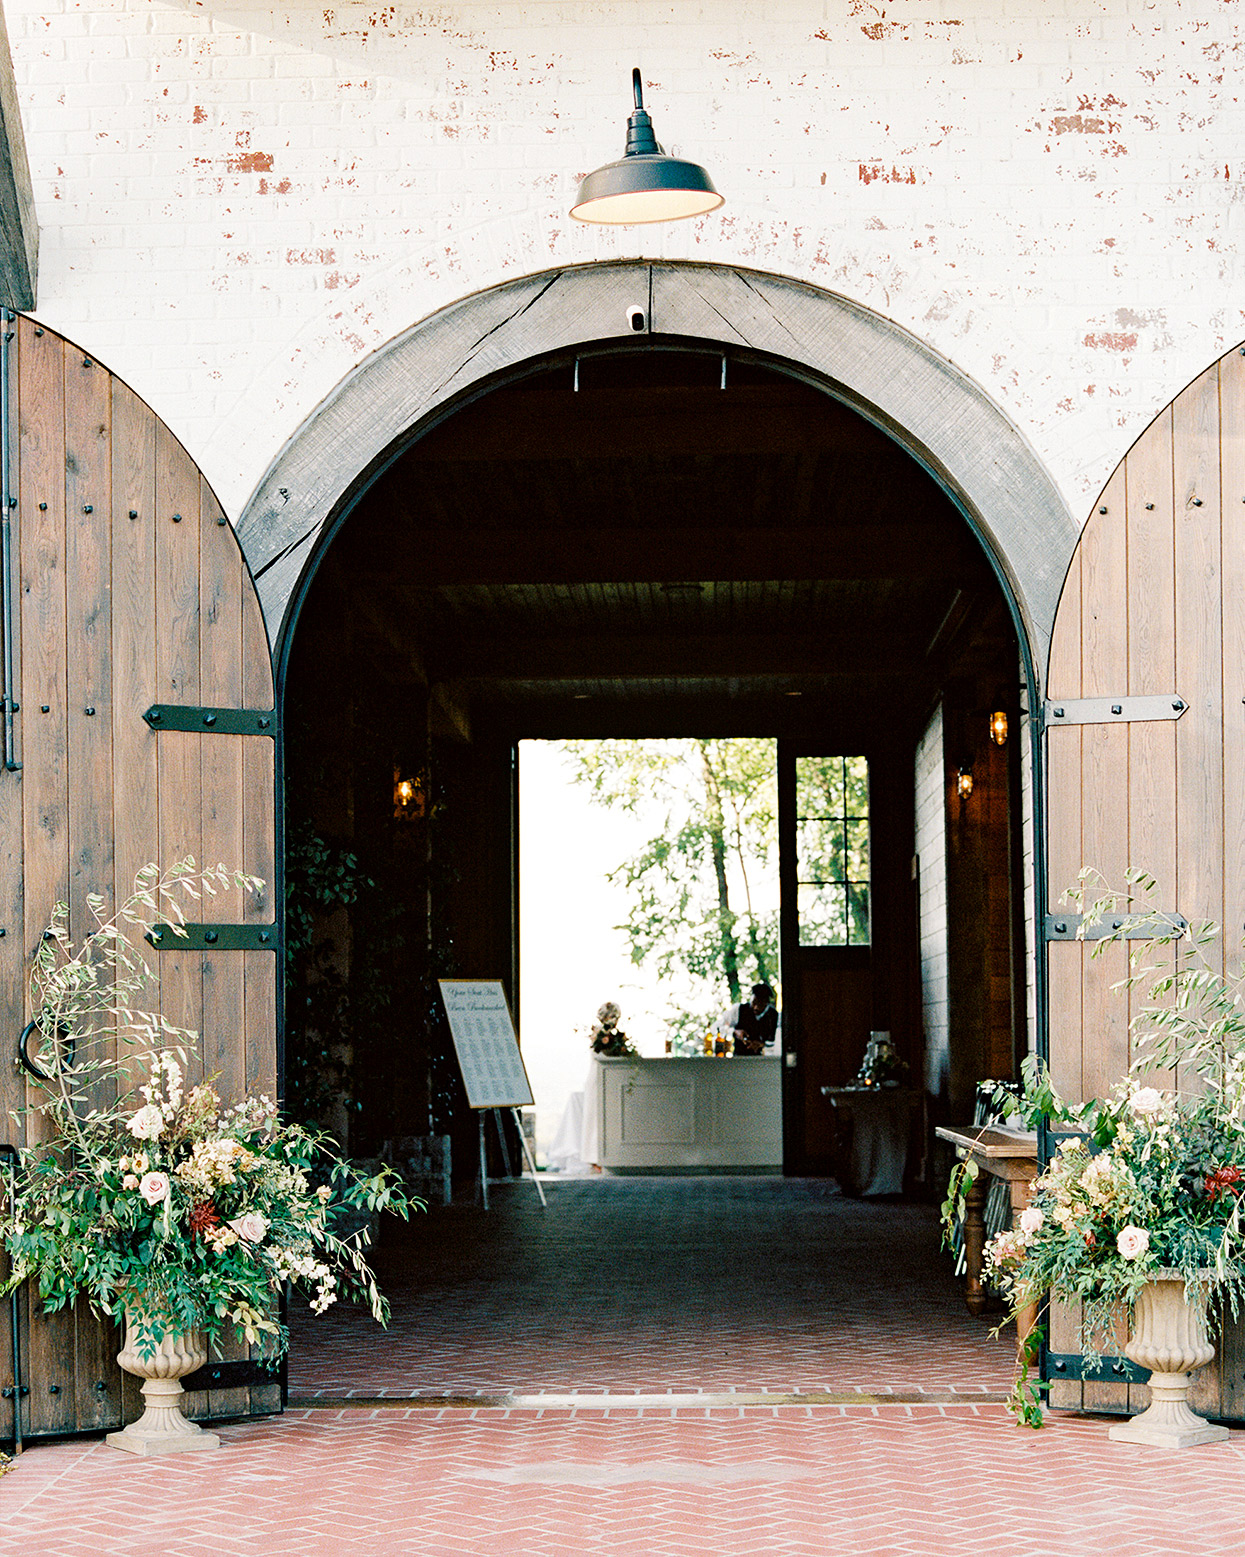 Is It Possible to Plan a Wedding Without Ever Visiting My Venue?